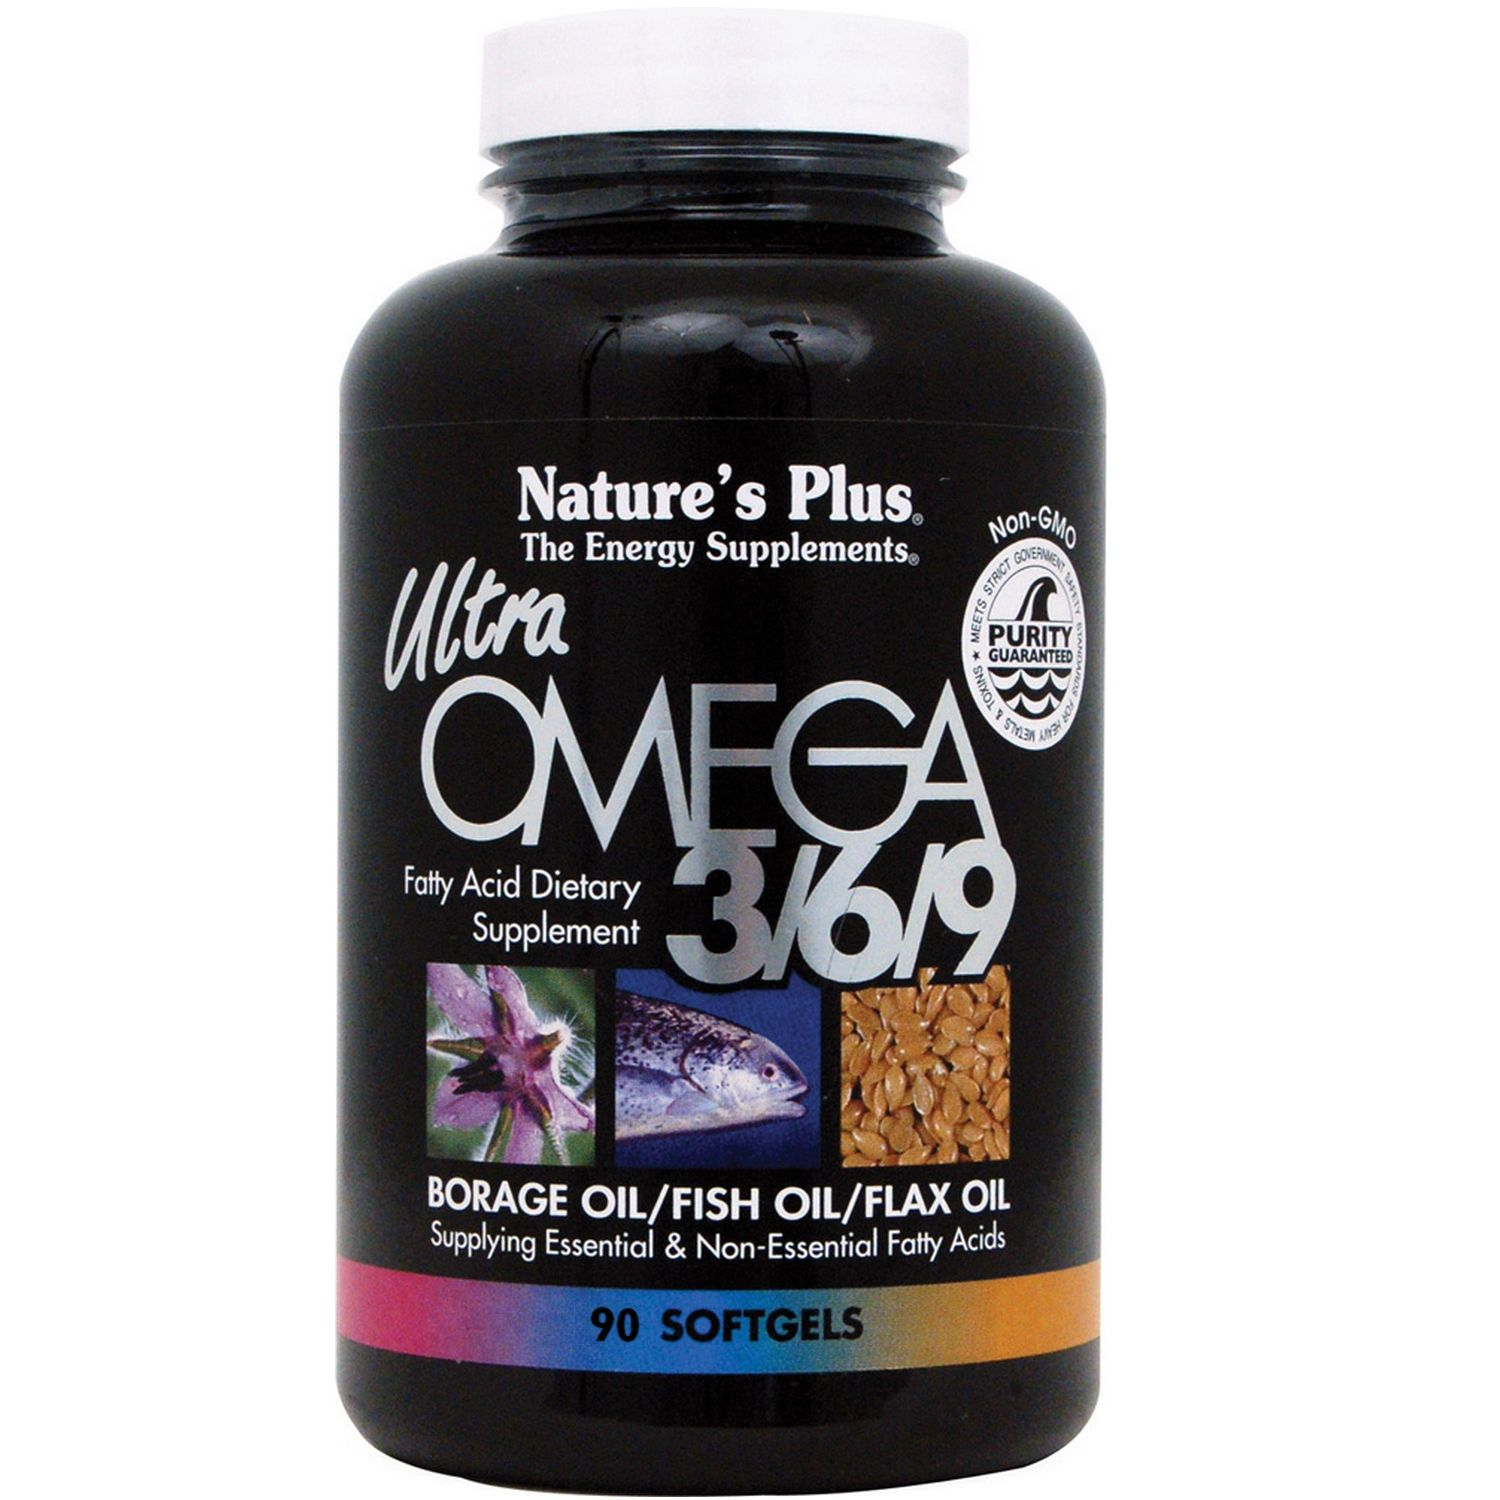 Nature's Plus, Ultra Omega 3-6-9